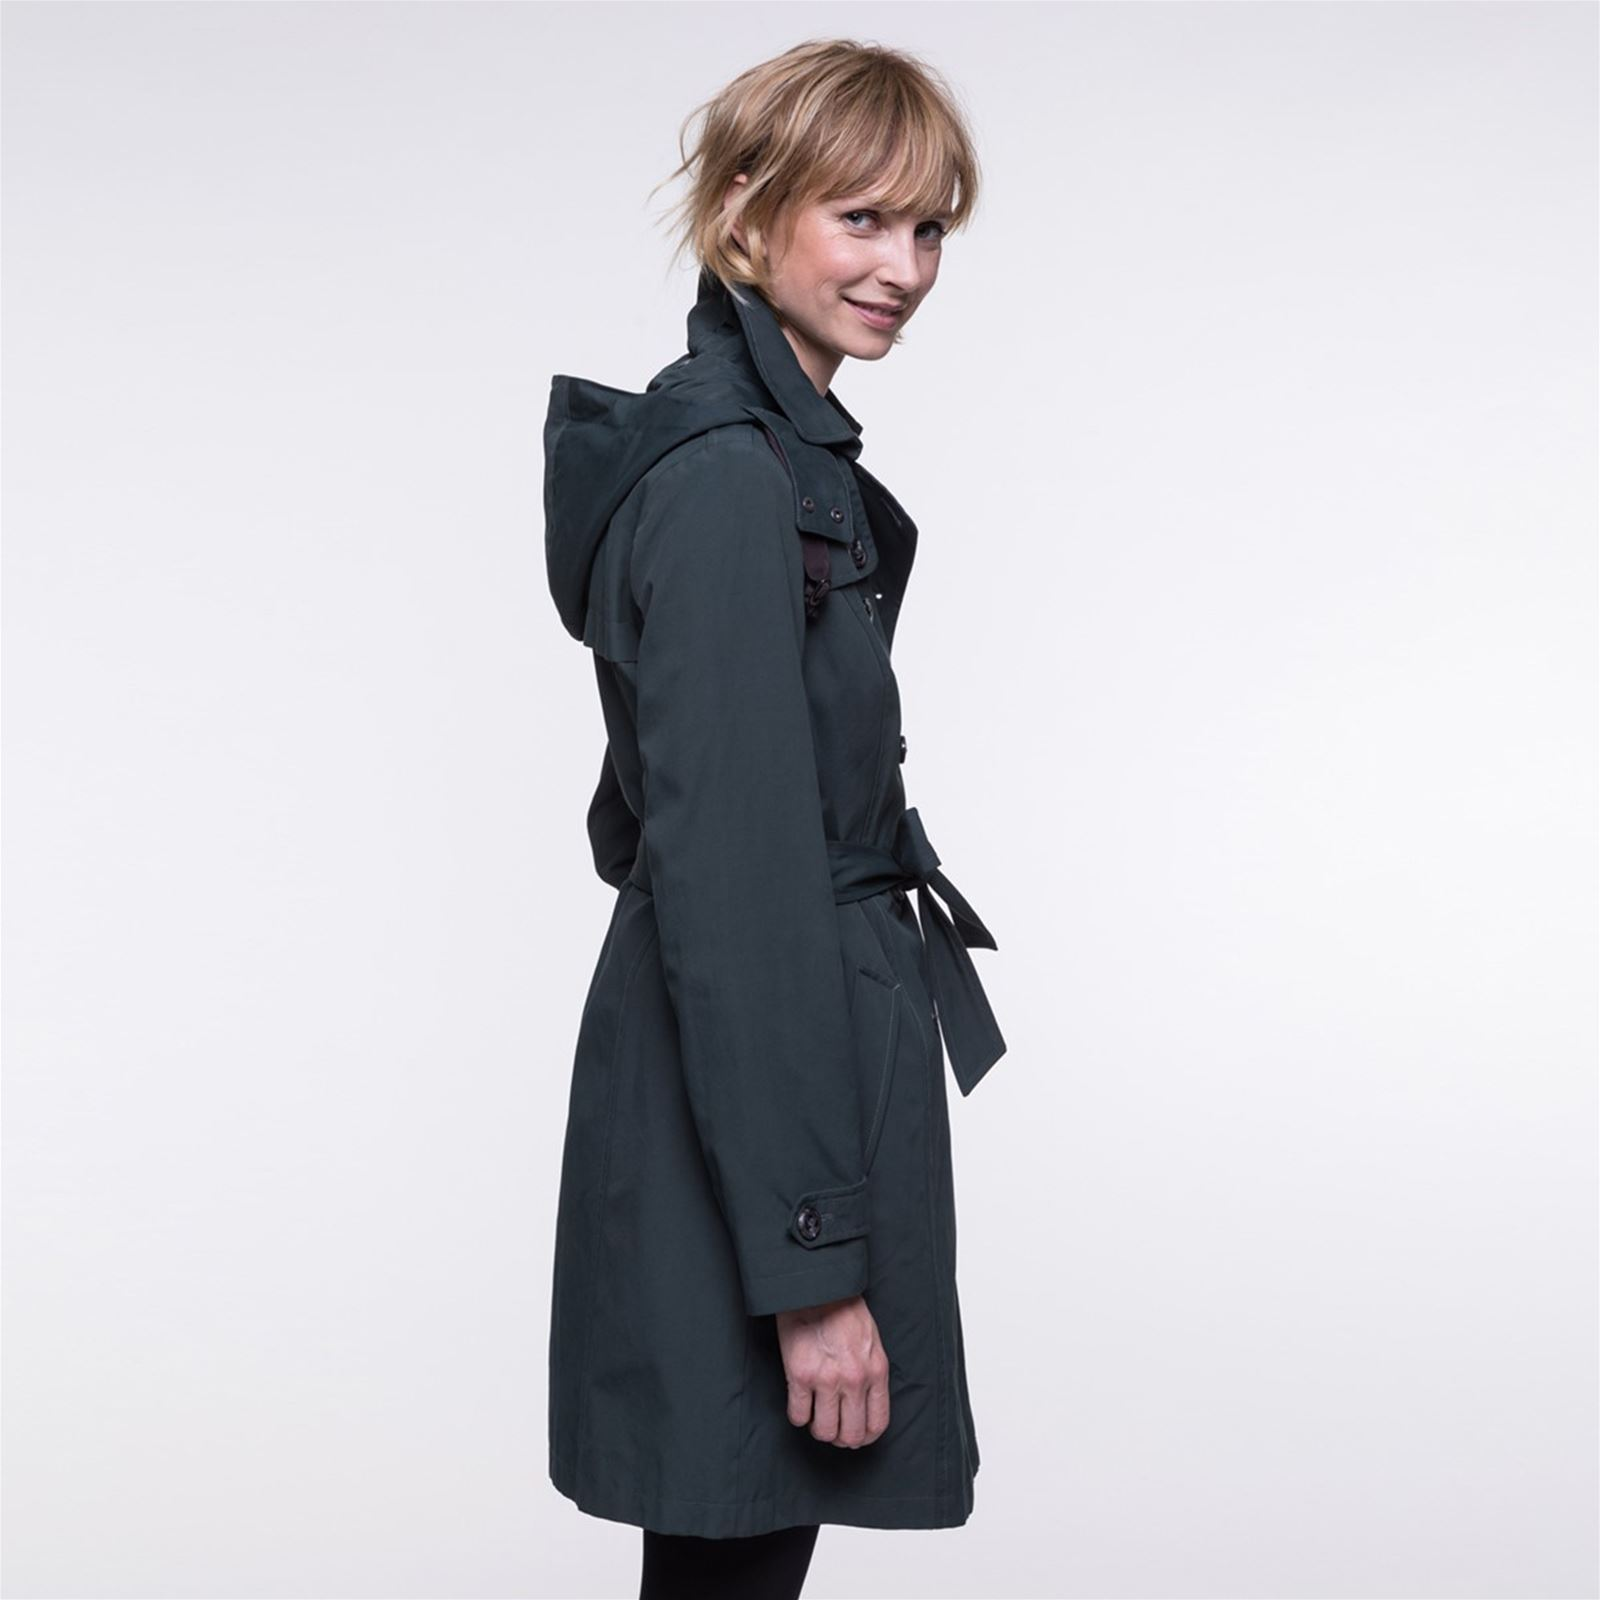 a AmovibleVert Femme And Capuche V Coat Trench T1c3JKFl